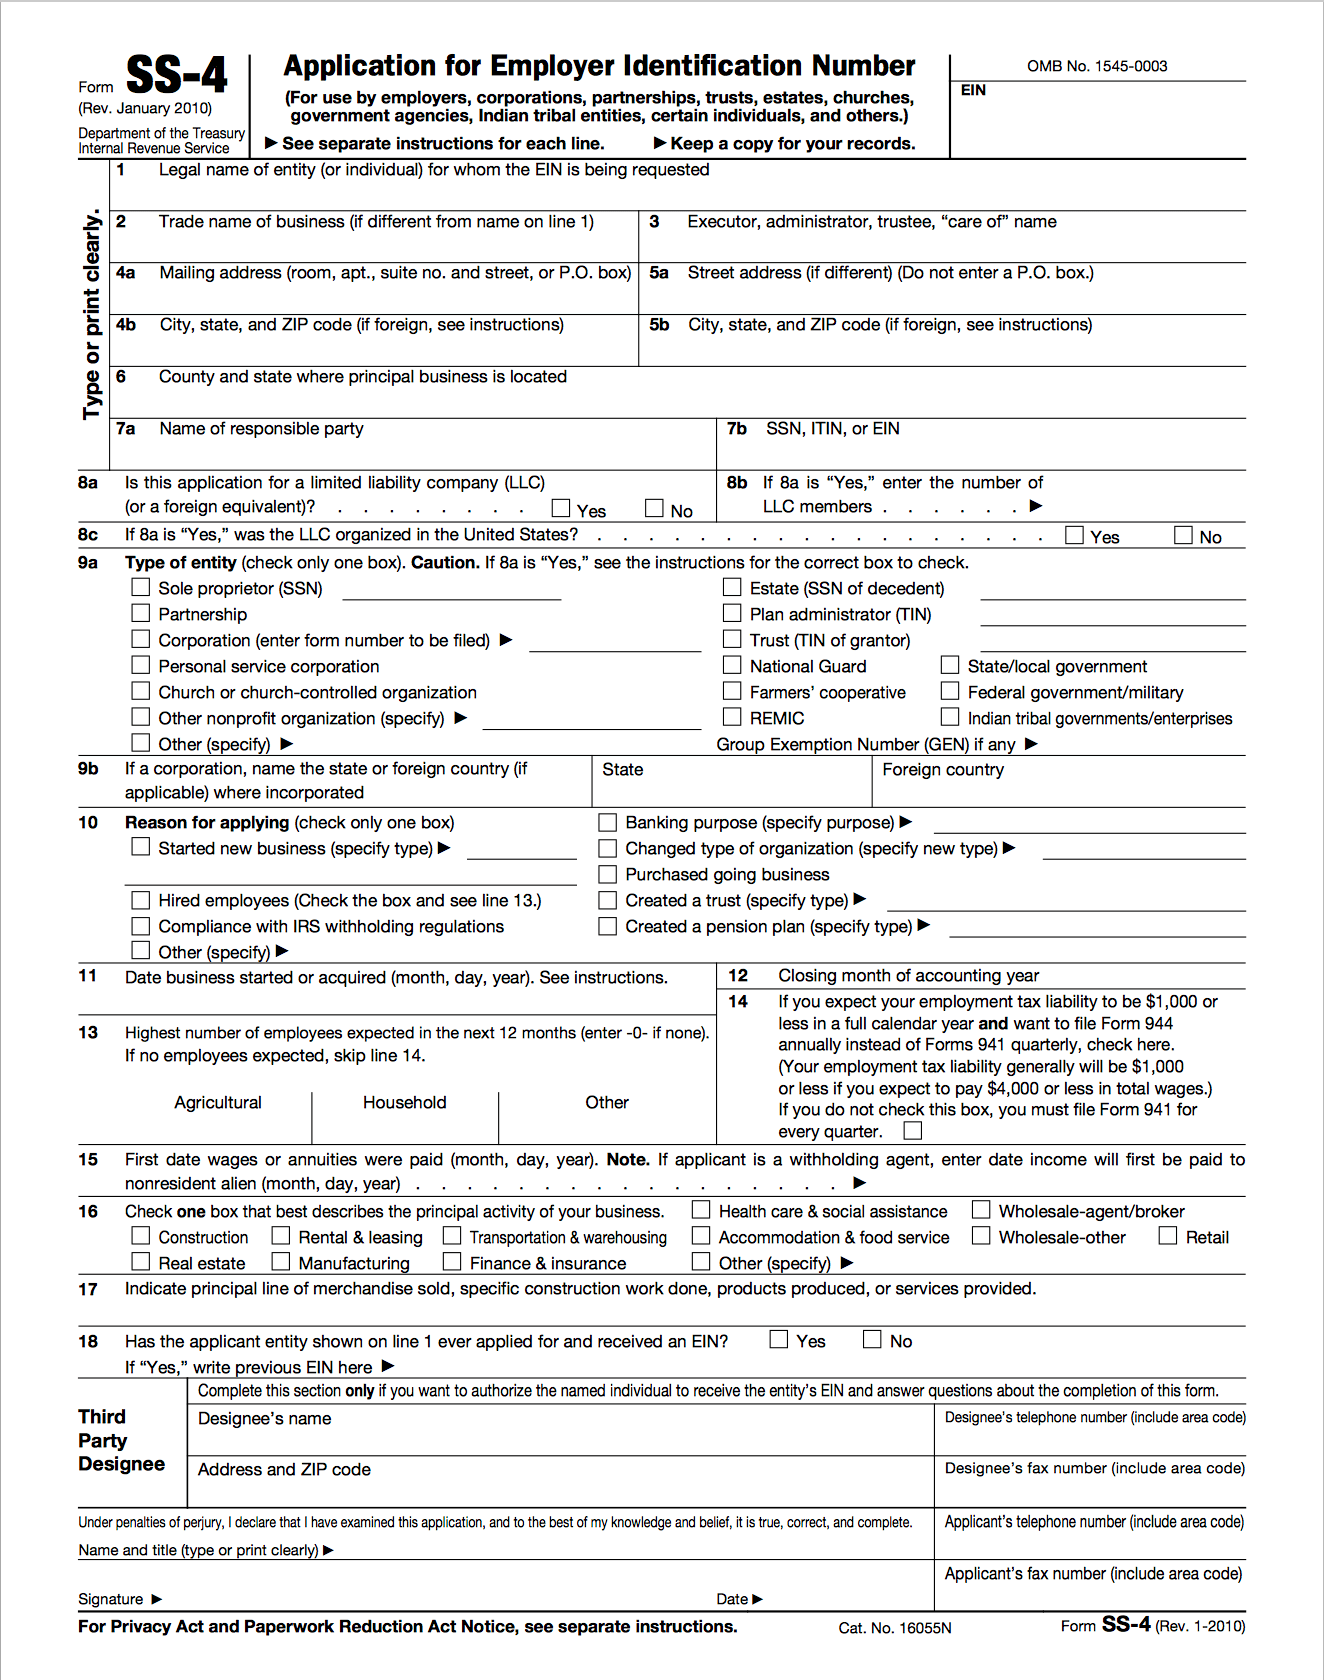 Screenshot of IRS form SS-4 to apply for EIN